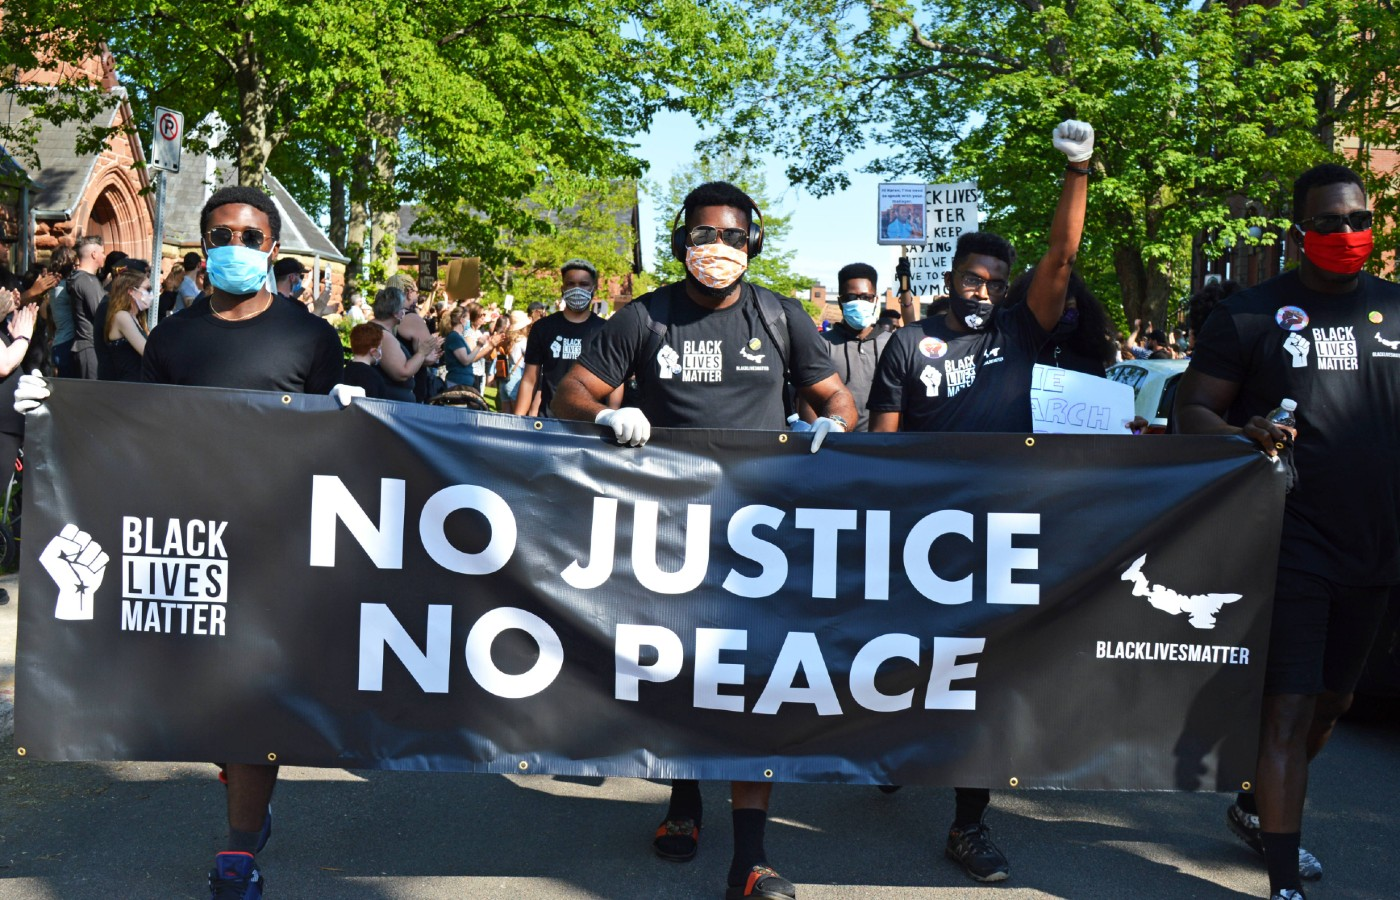 black-lives-matter-march-in-charlottetown